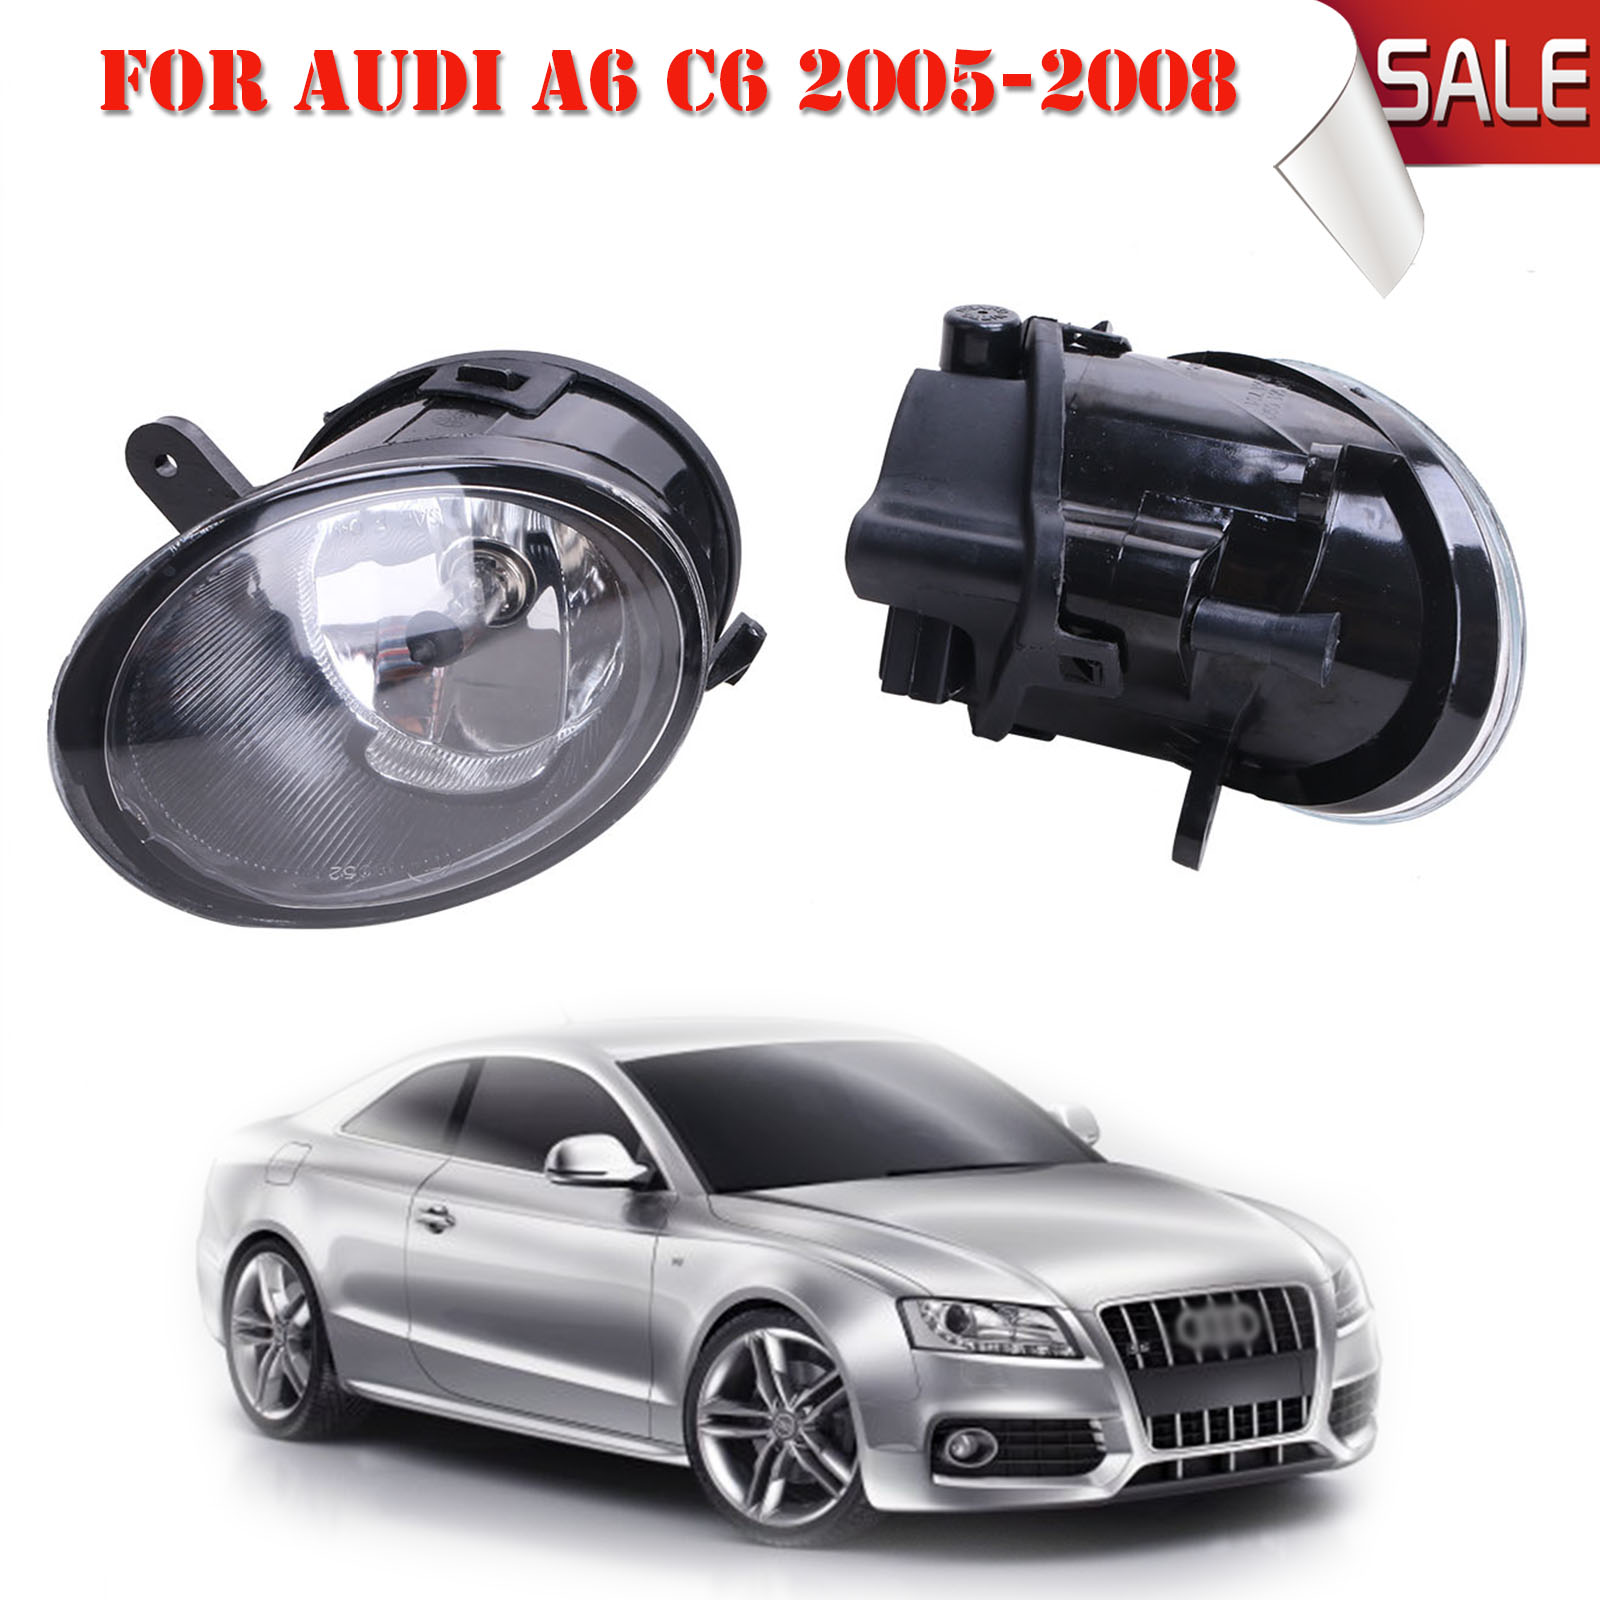 2x Side Front Fog Driving Light Fog Lamps with H7 Bulbs For AUDI A6 C6 2005 2006 2007 2008 Car-Styling WISENGEAR #P312<br><br>Aliexpress